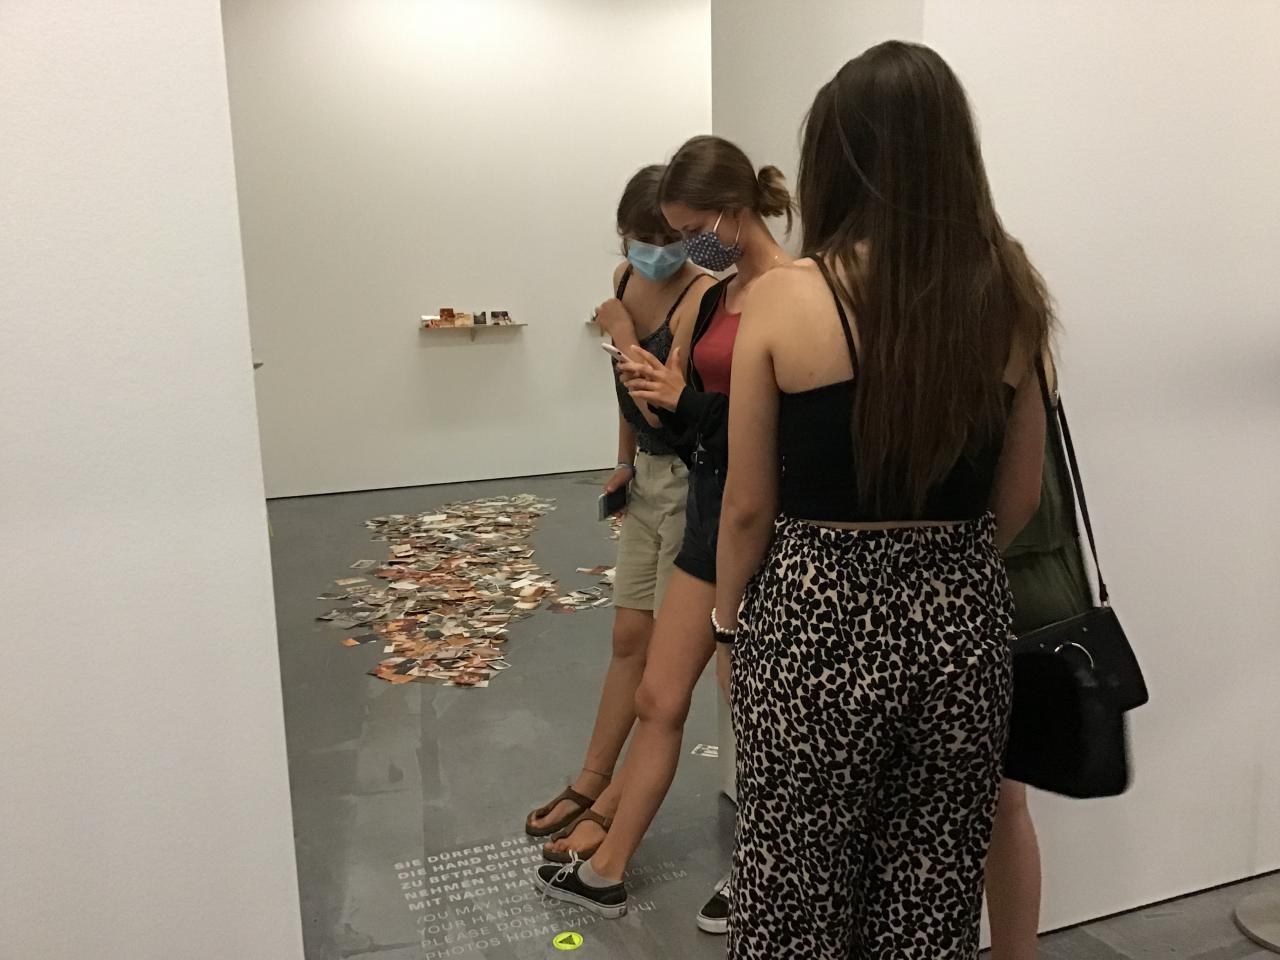 You can see three girls who have put their feet on a text on the floor and take a photo of it.